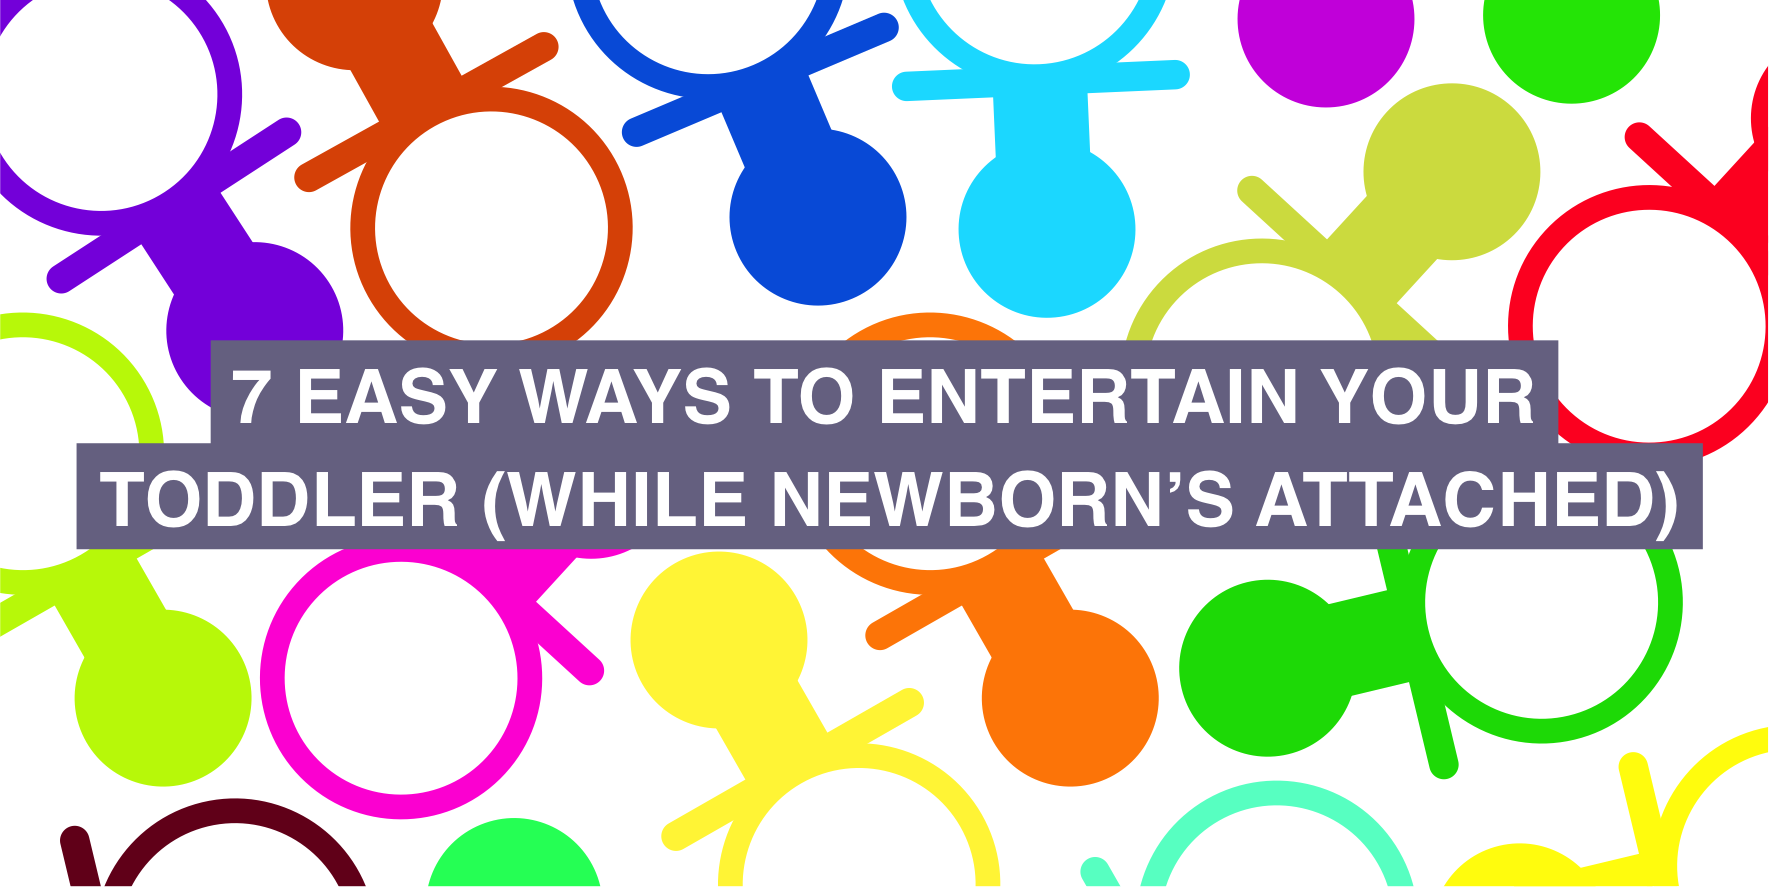 Seven easy ways to entertain your toddler while your newborn's attached to you